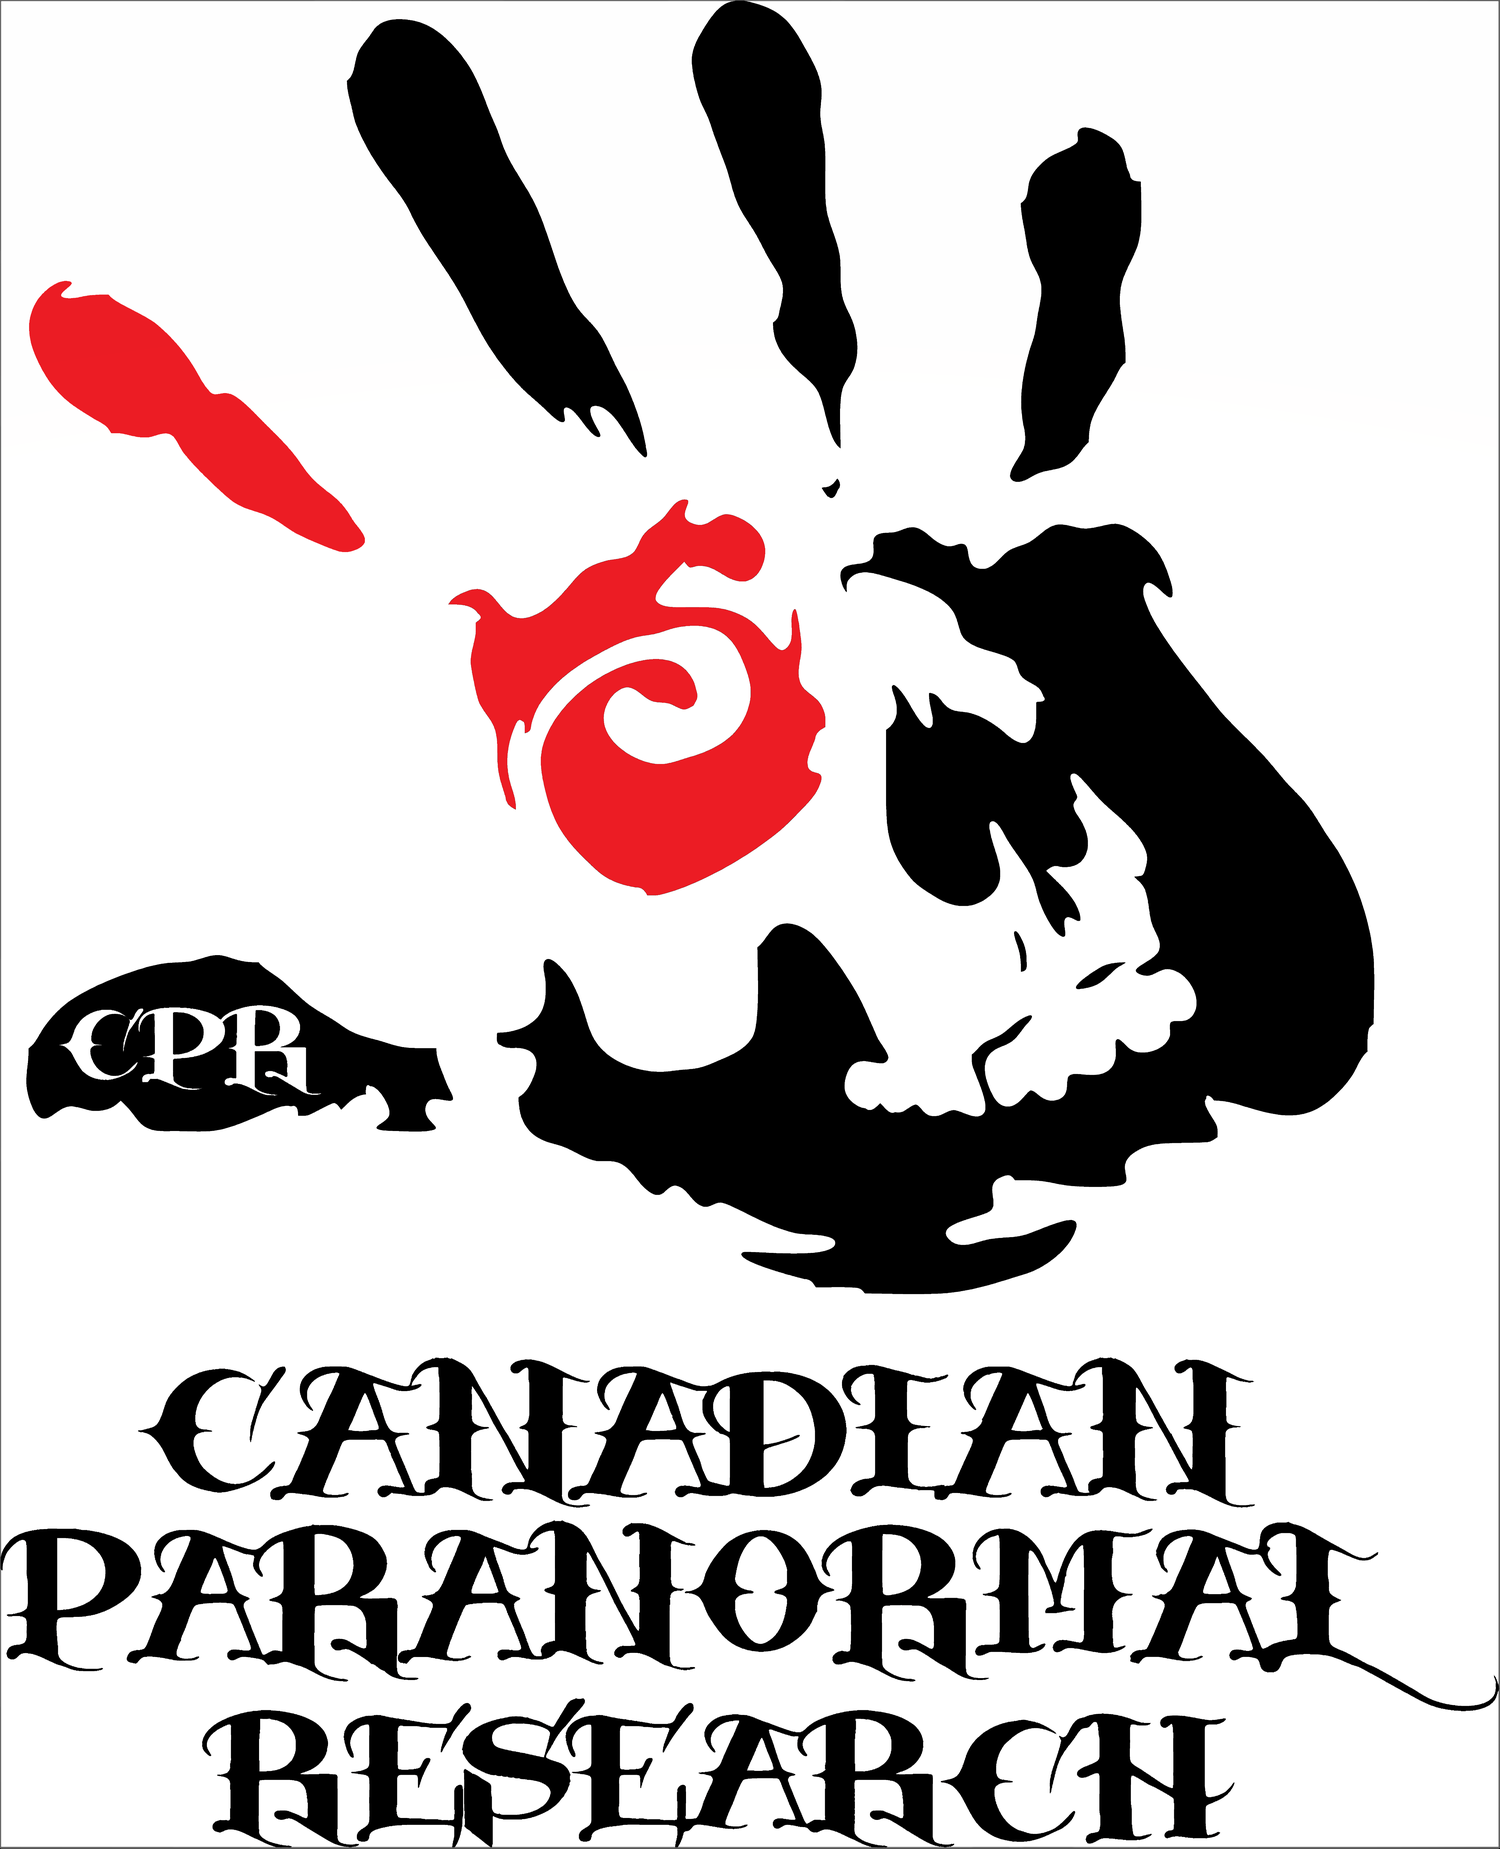 Canadian Paranormal Research